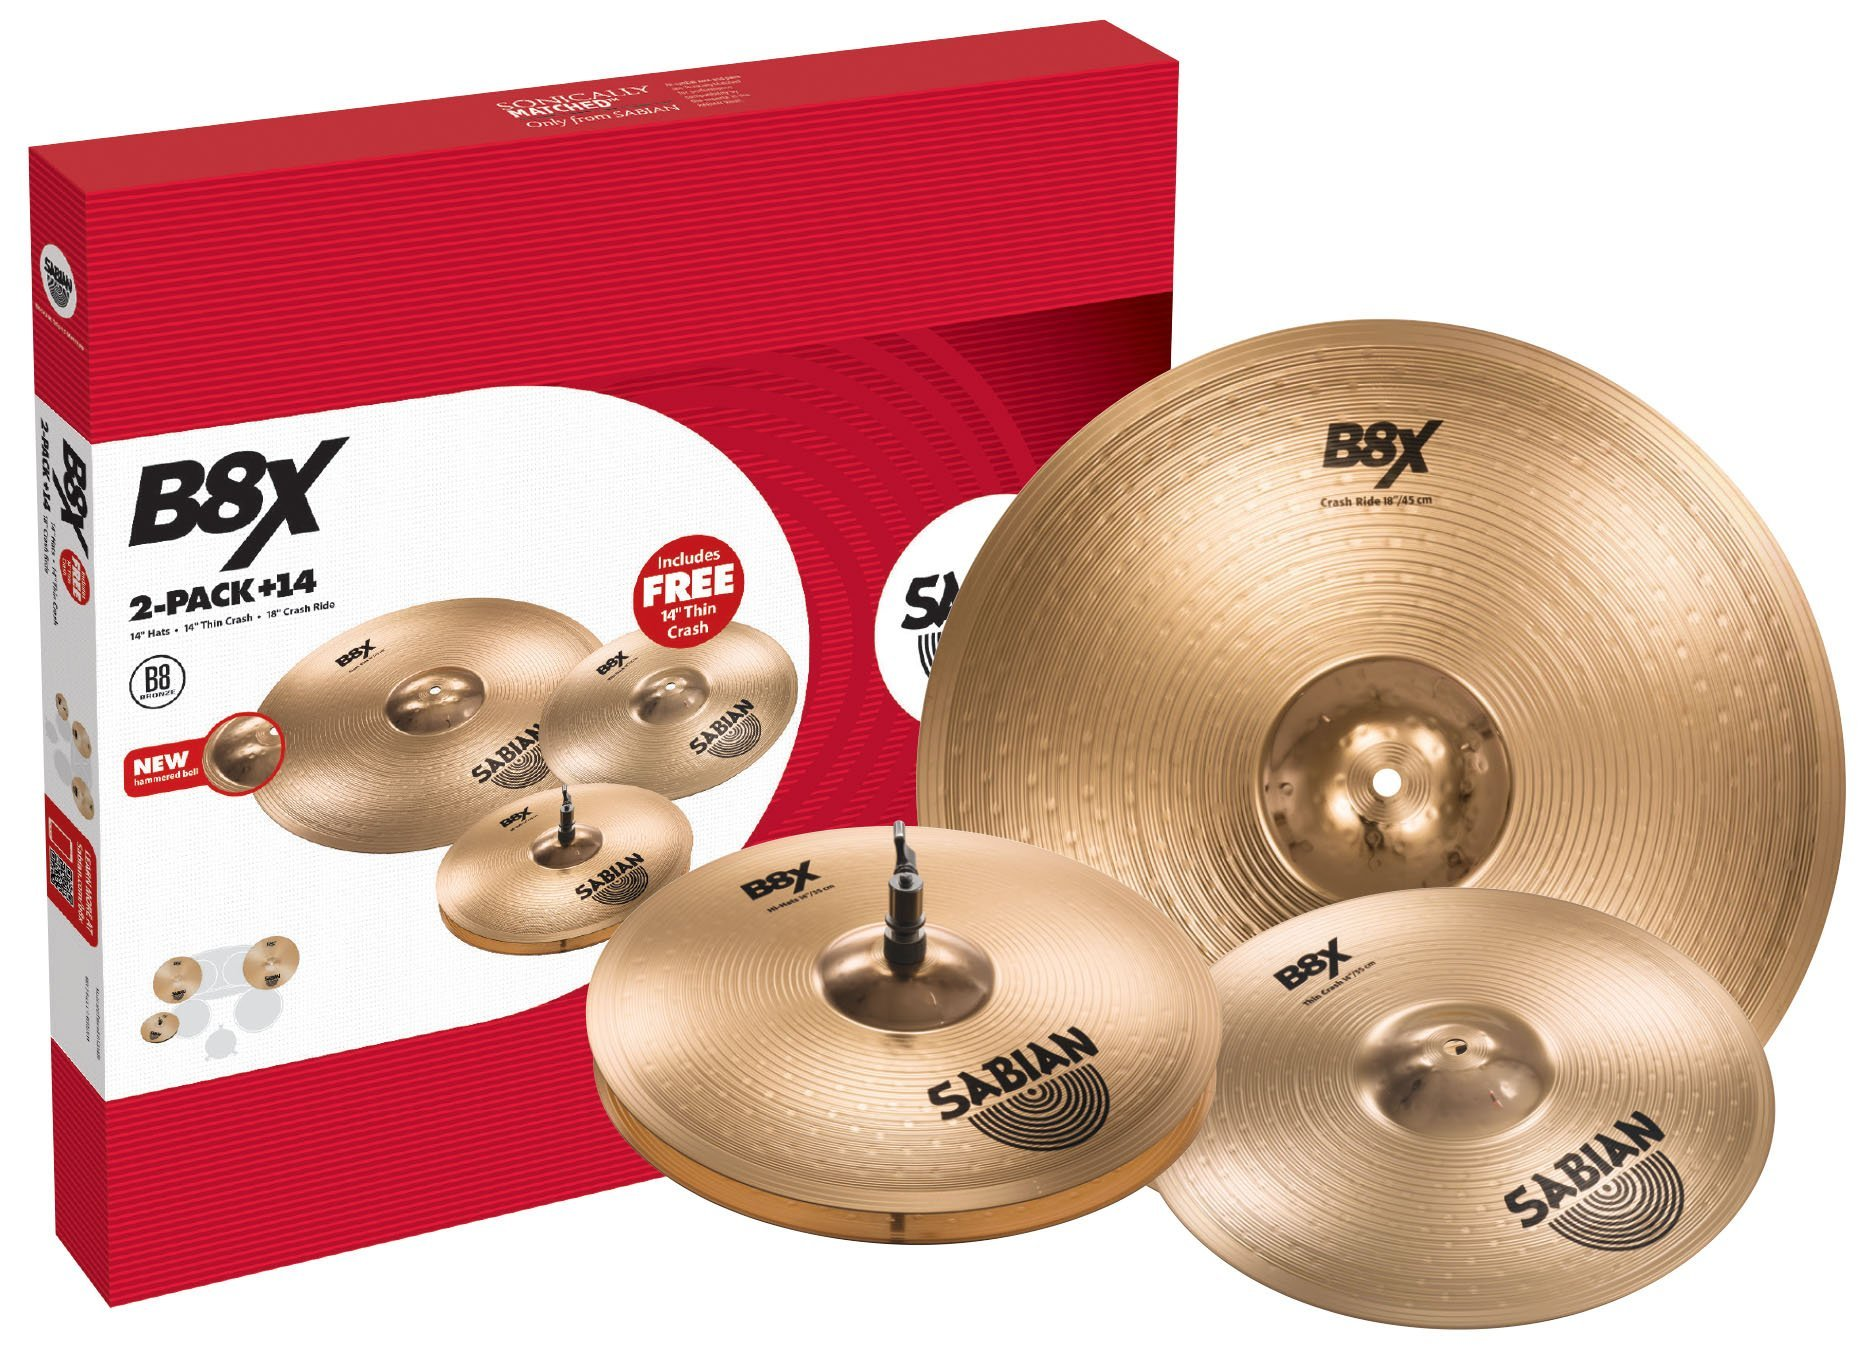 Sabian Cymbal Variety Package, inch (45002X-14)